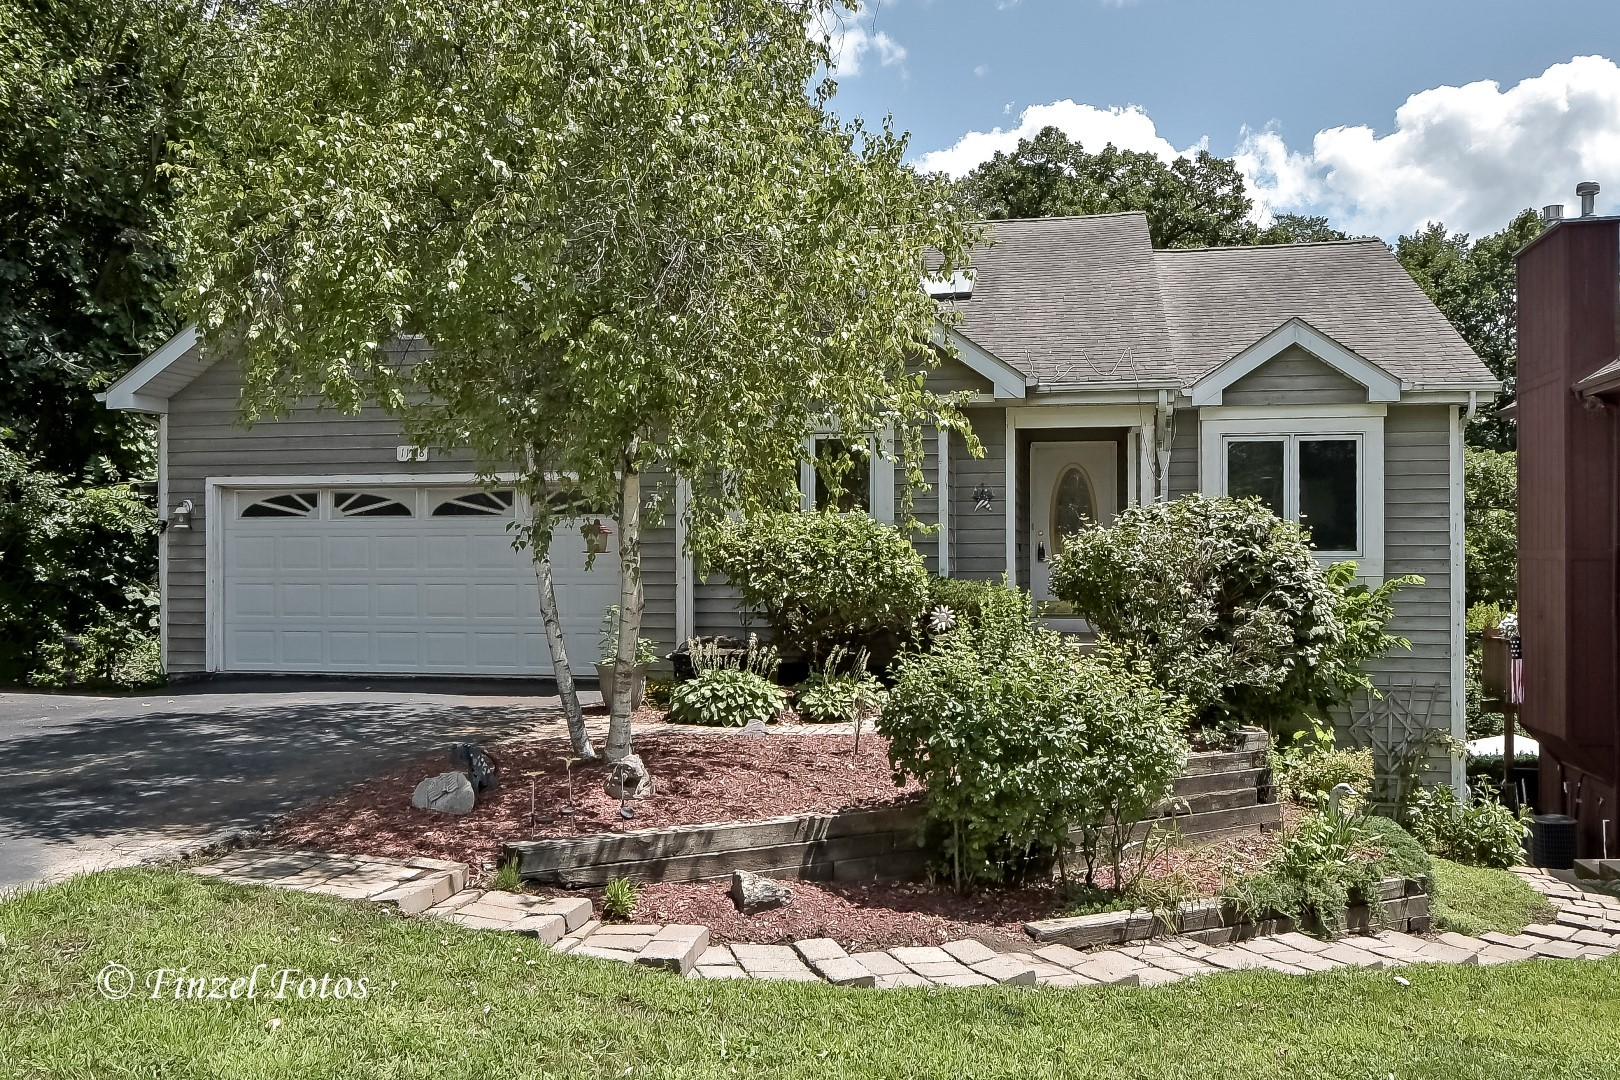 Photo for 1108 Burr Street, LAKE IN THE HILLS, IL 60156 (MLS # 10469066)